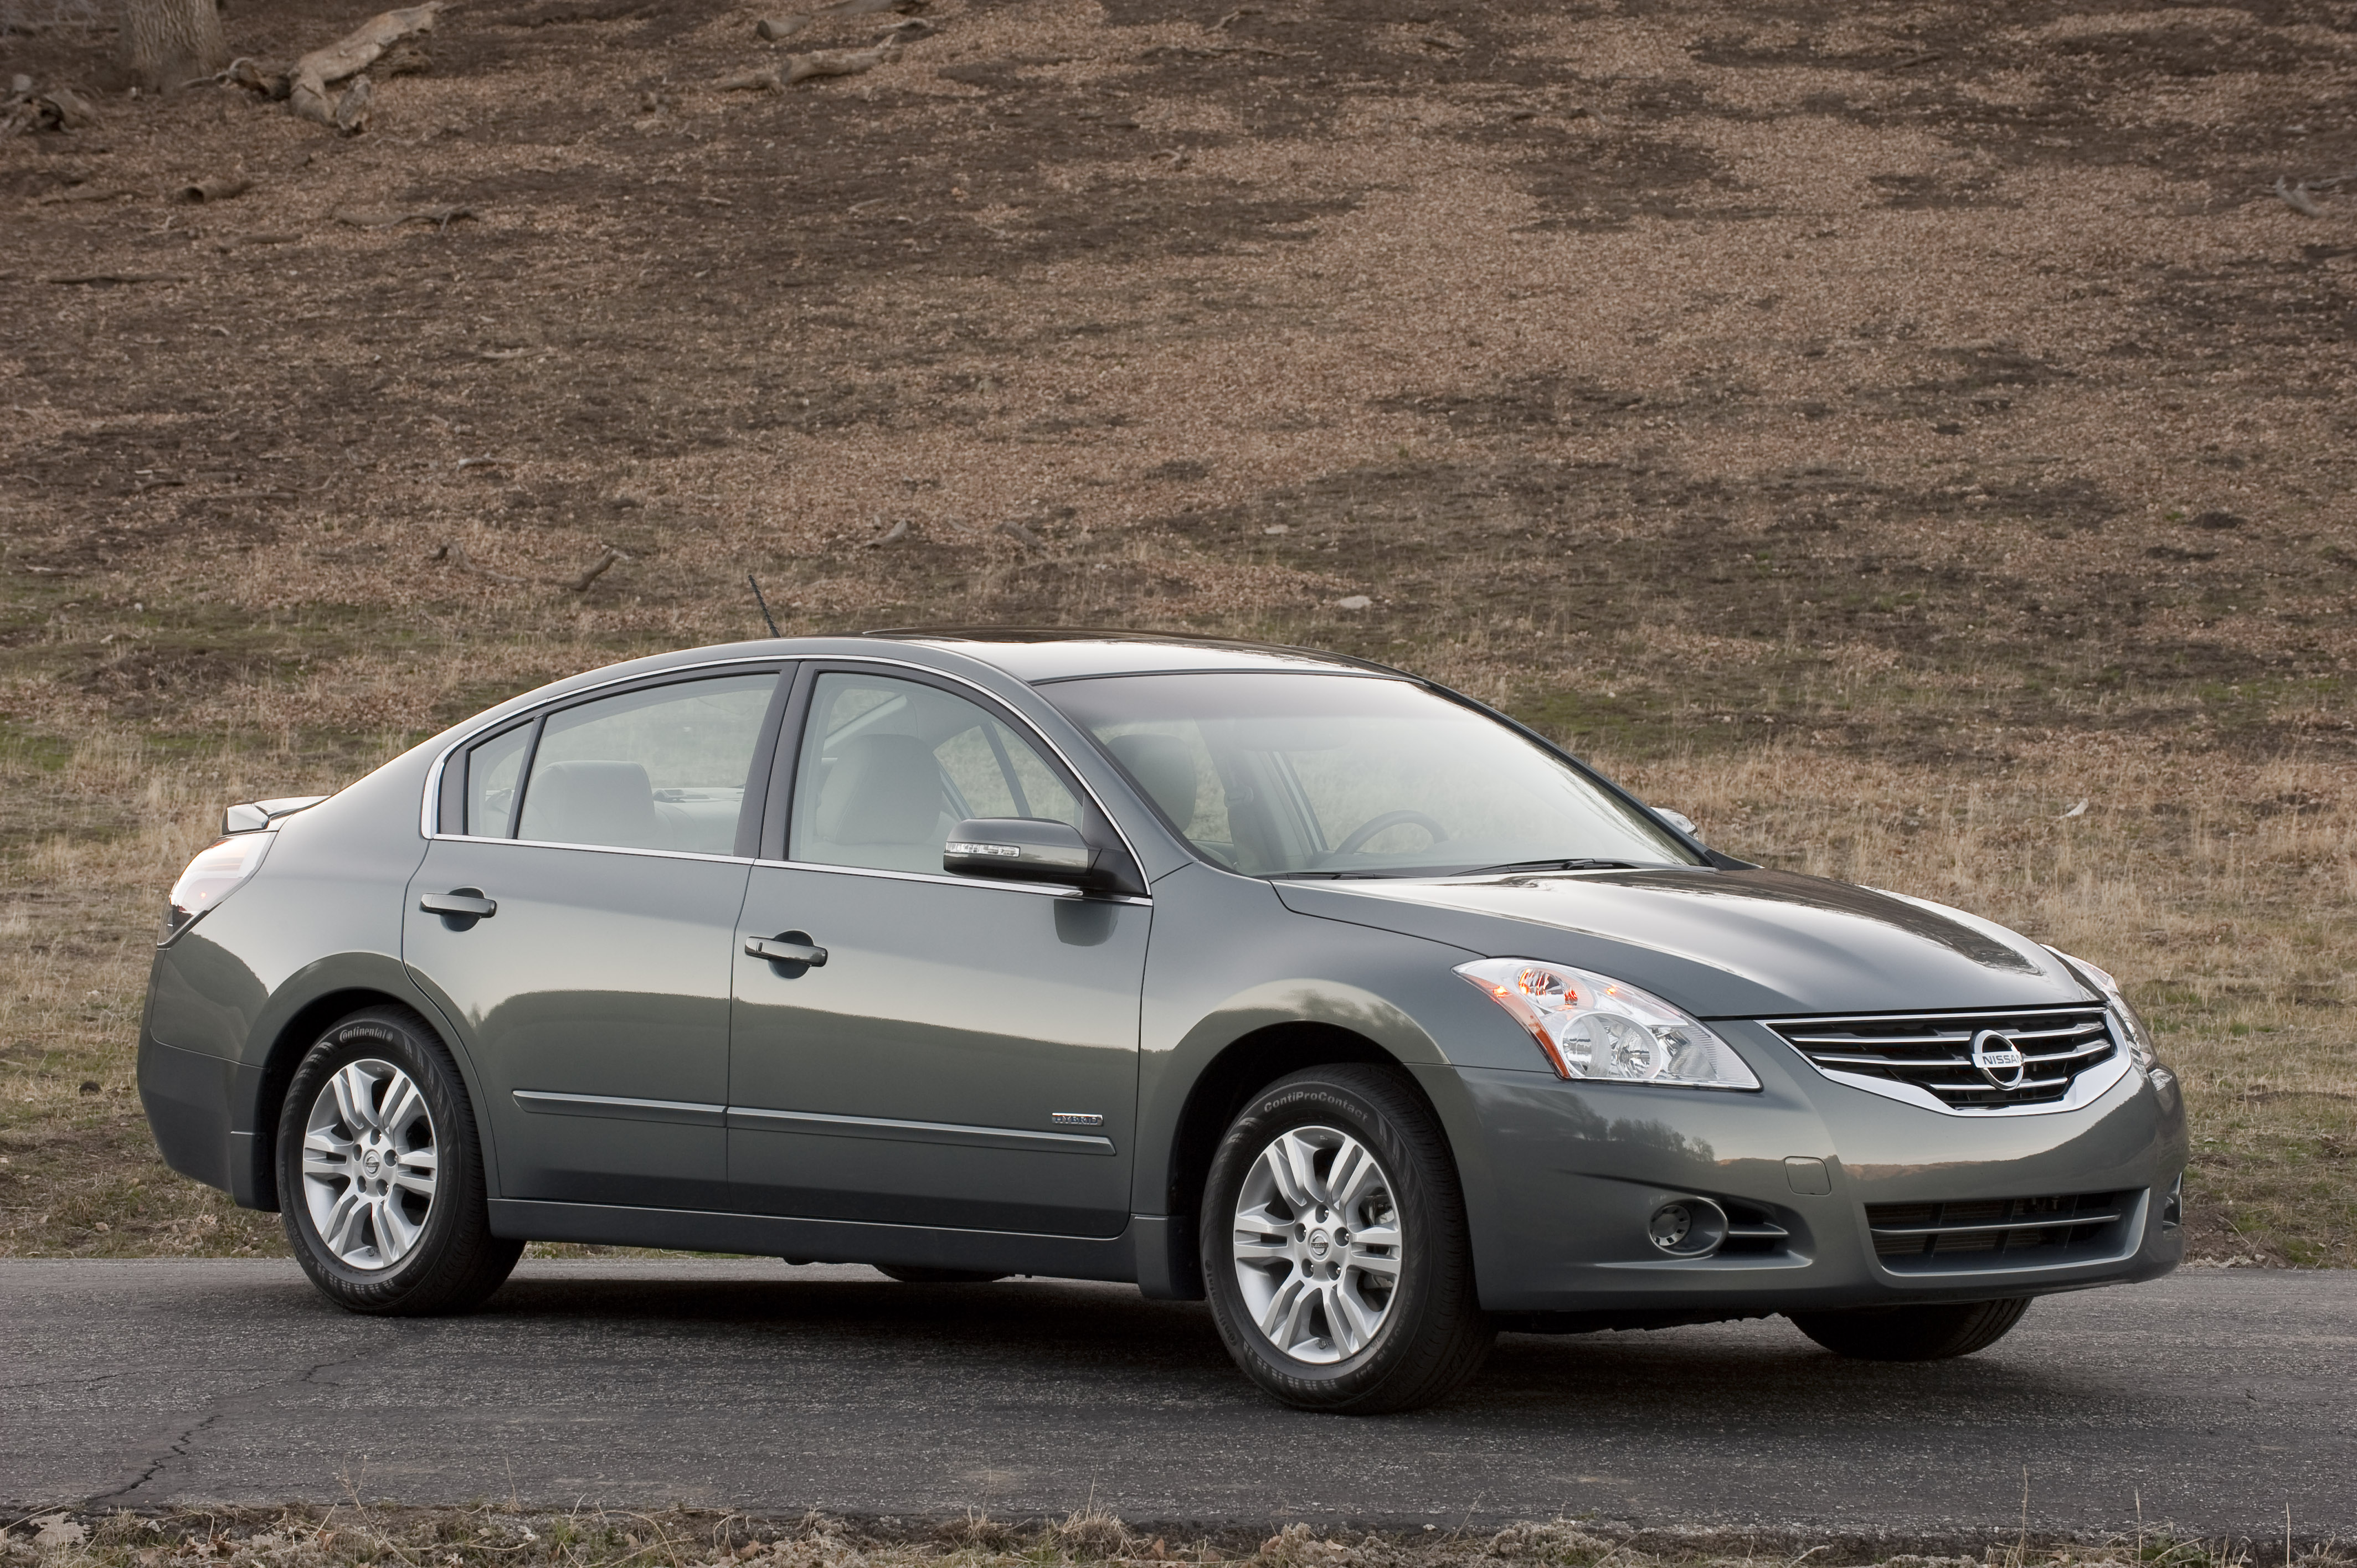 Nissan Altima Hybrid 2010 Road Reality